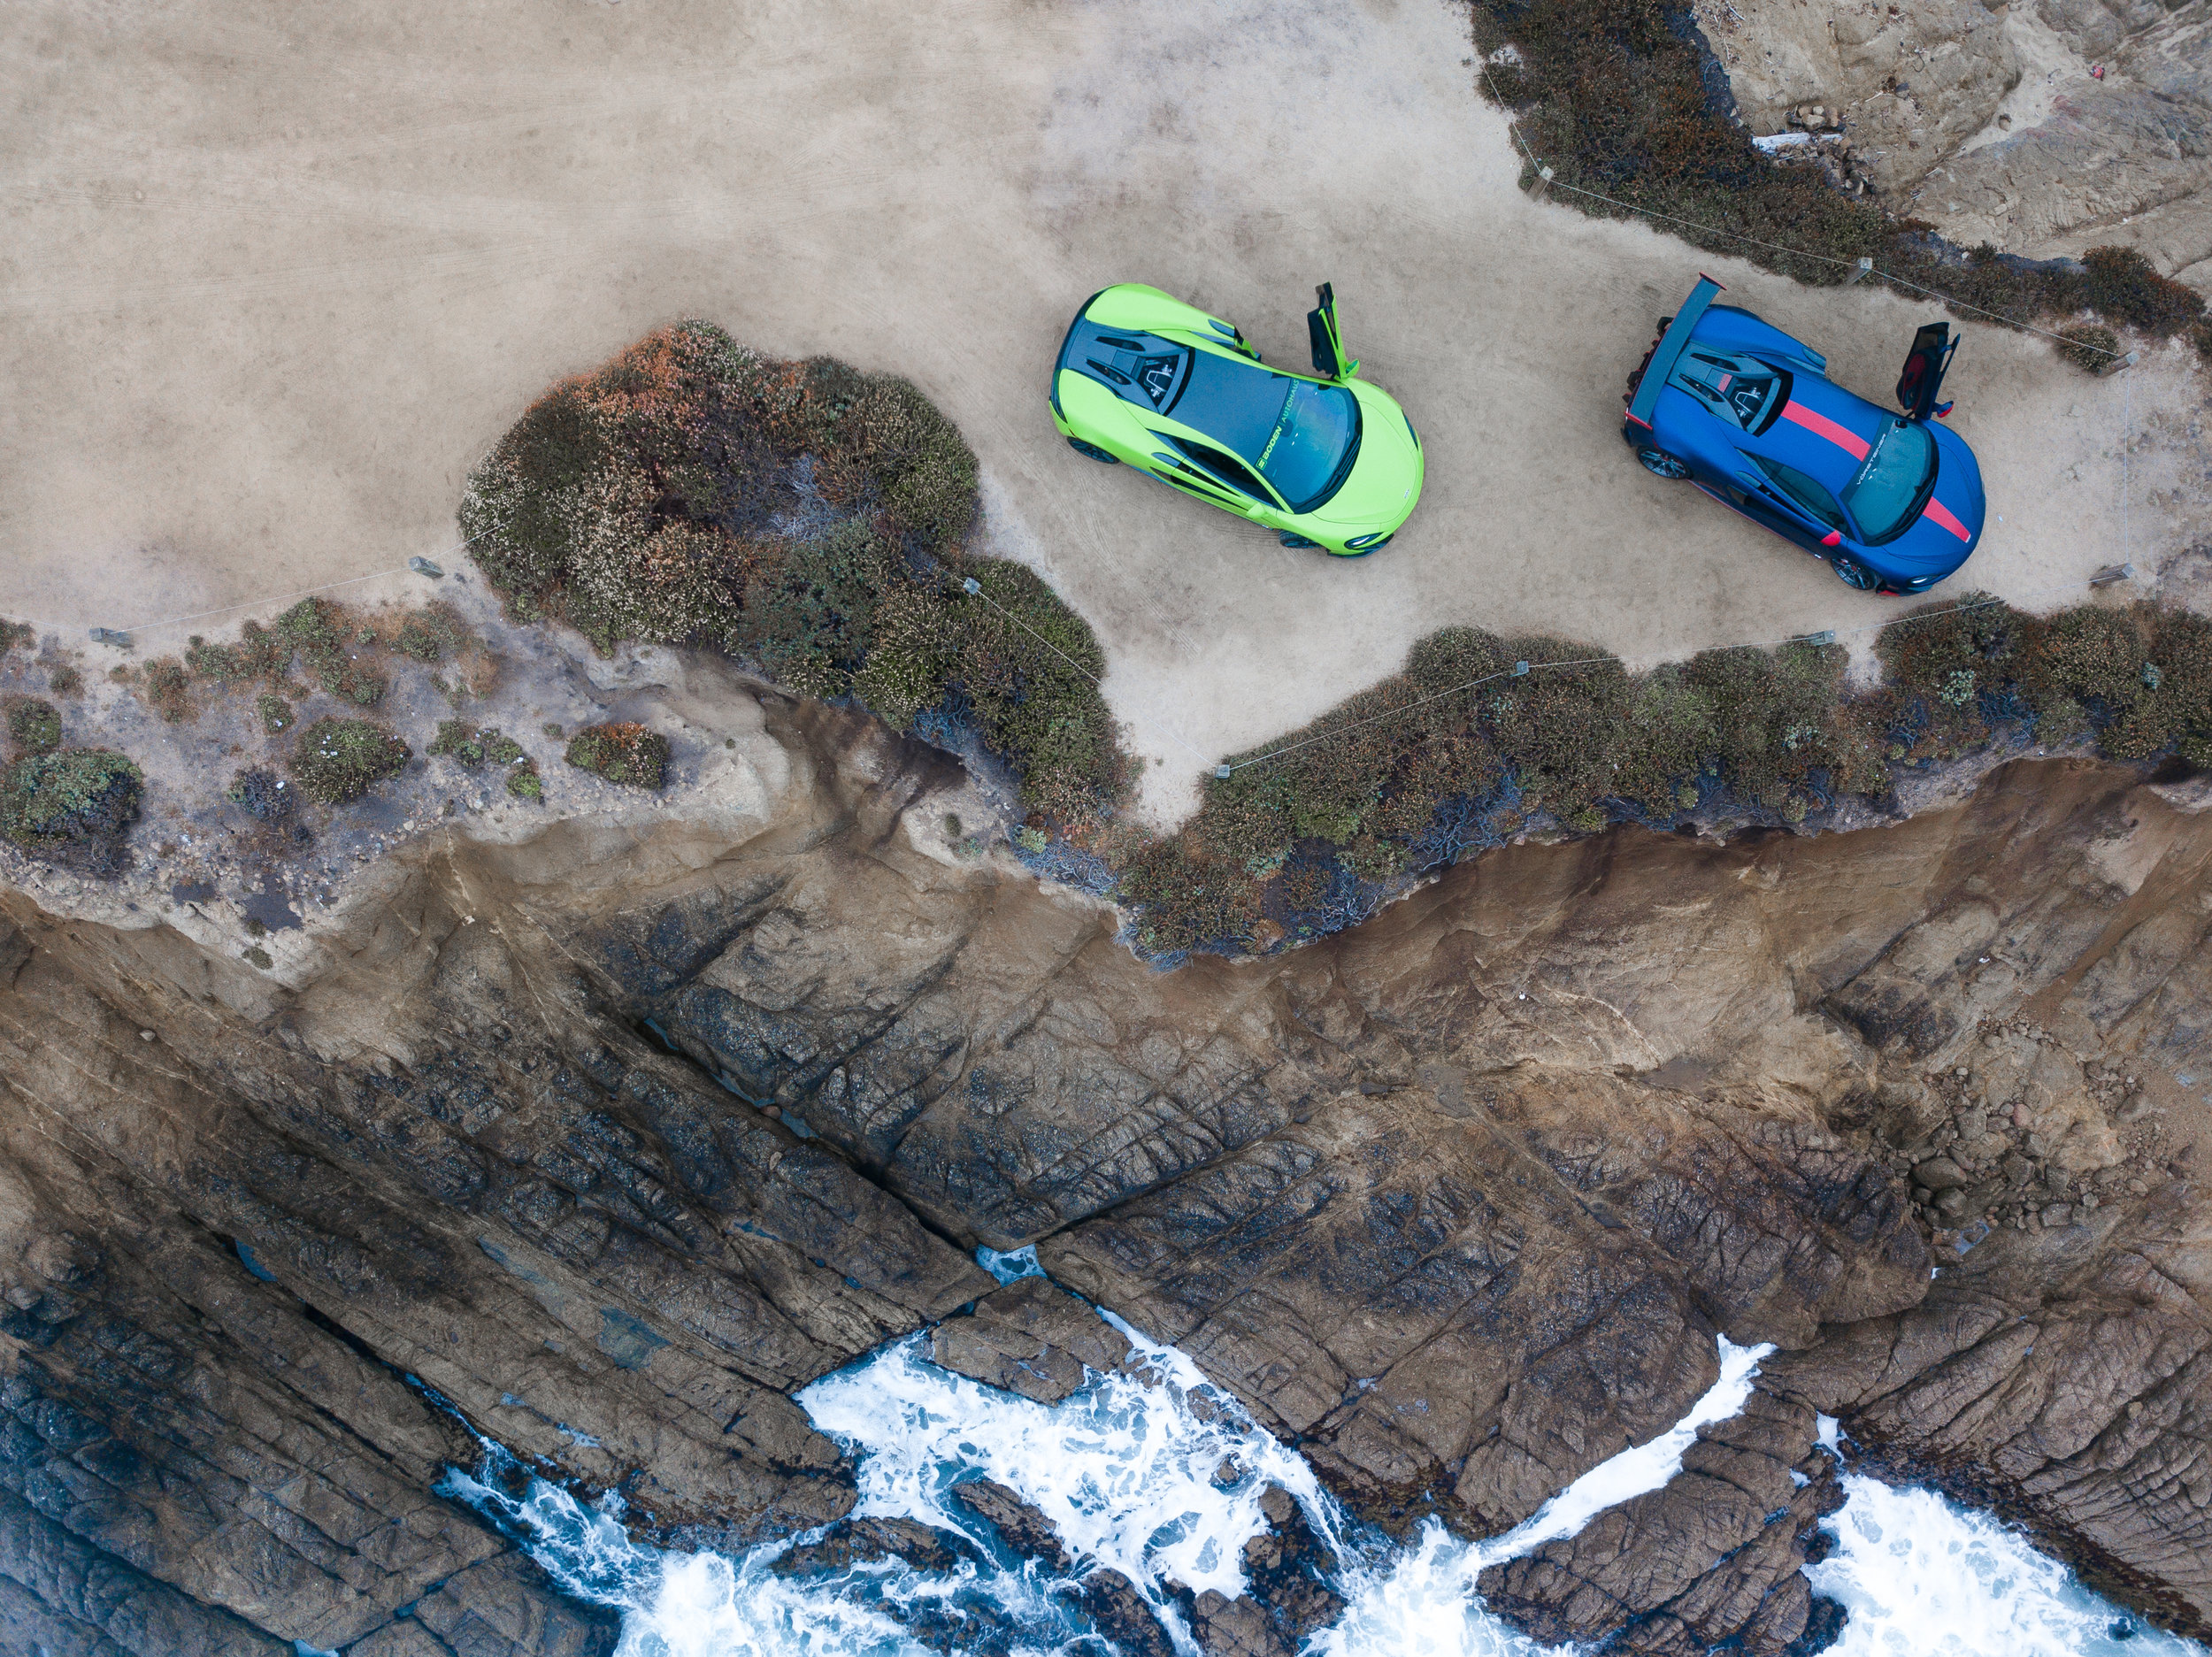 Stay_Driven_Monterey_Mclarens_DRONE-26.jpg